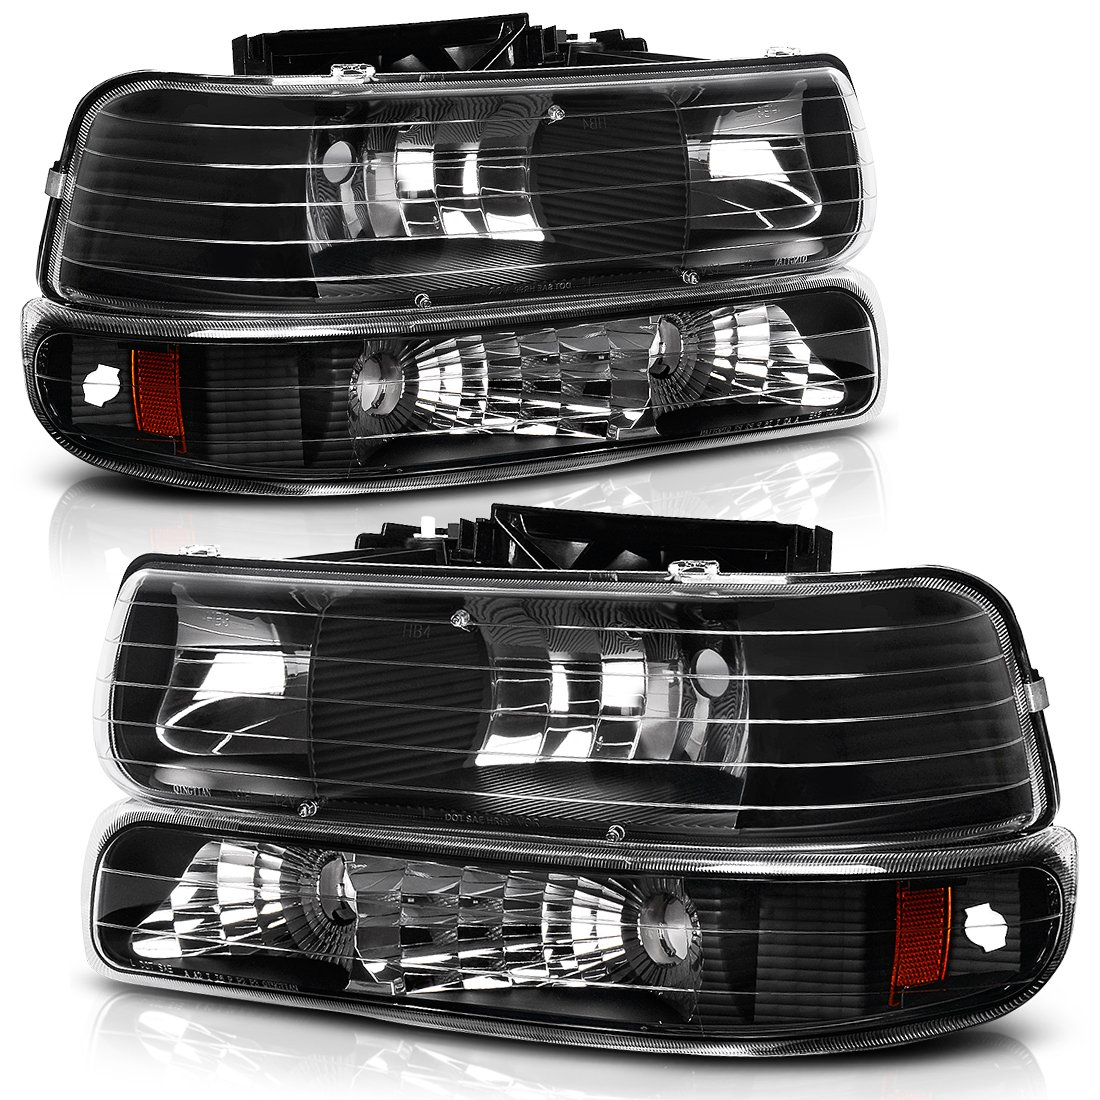 Headlight Assembly for 1999-2002 Chevy Silverado 1500 2500//2001 2002 Chevy Silverado 1500HD 2500HD 3500//2000-2006 Tahoe Suburban 1500 2500 Headlamp with Bumper Lights Passenger And Driver Side